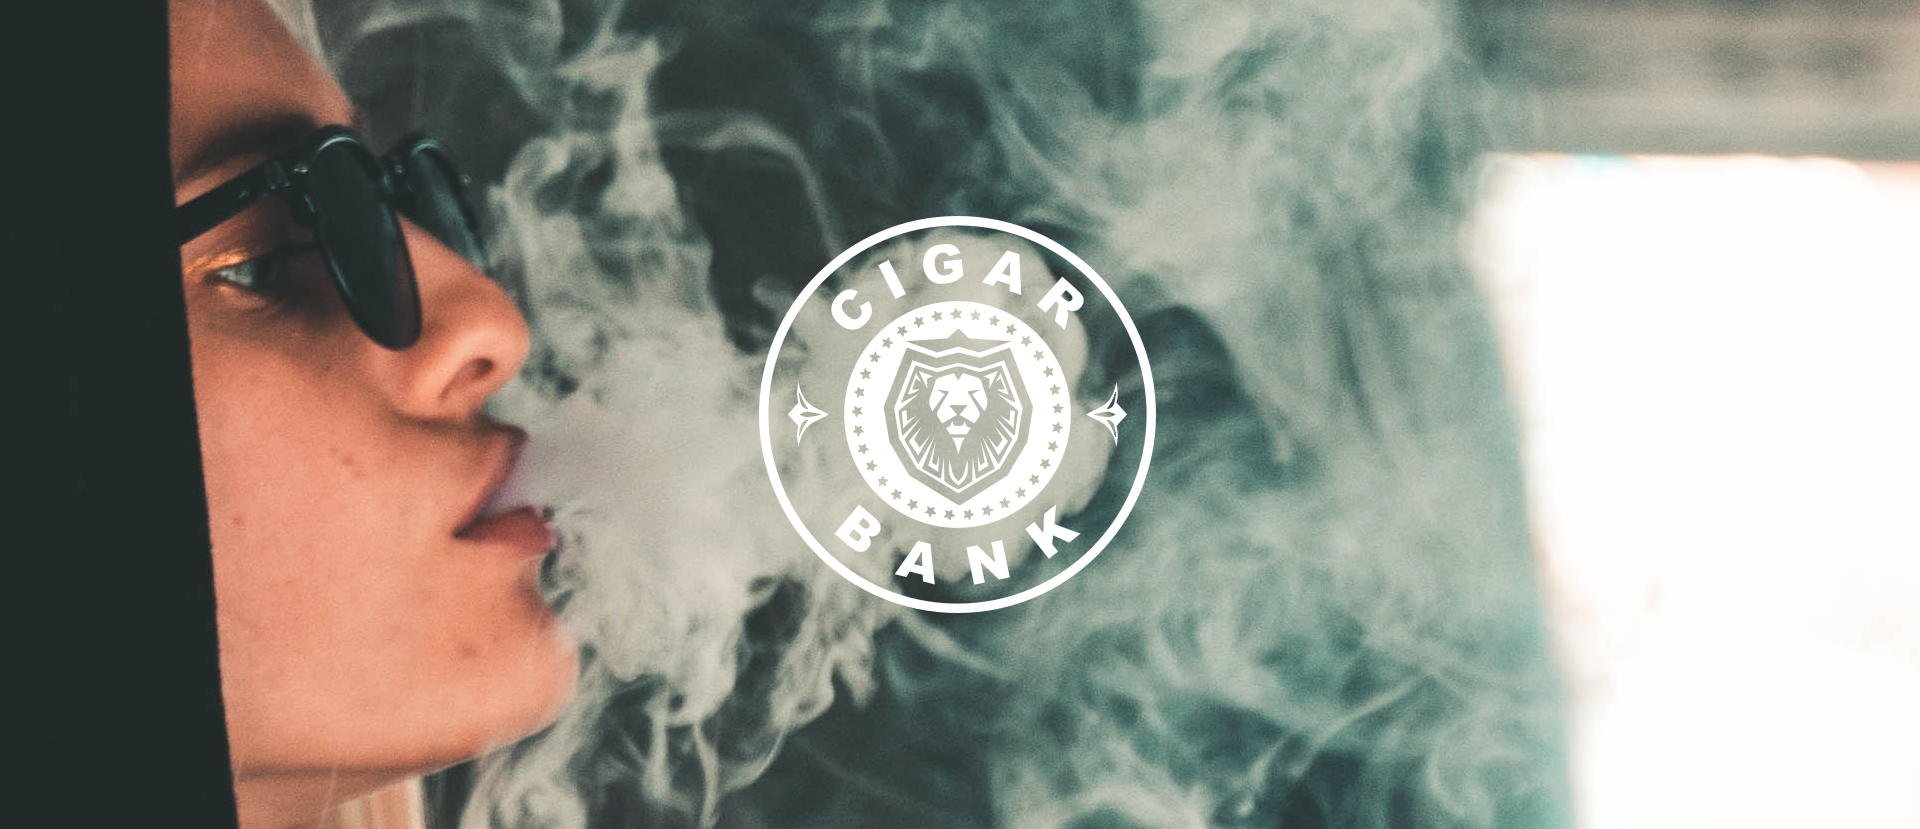 CIGAR BANK logo created by margos bites